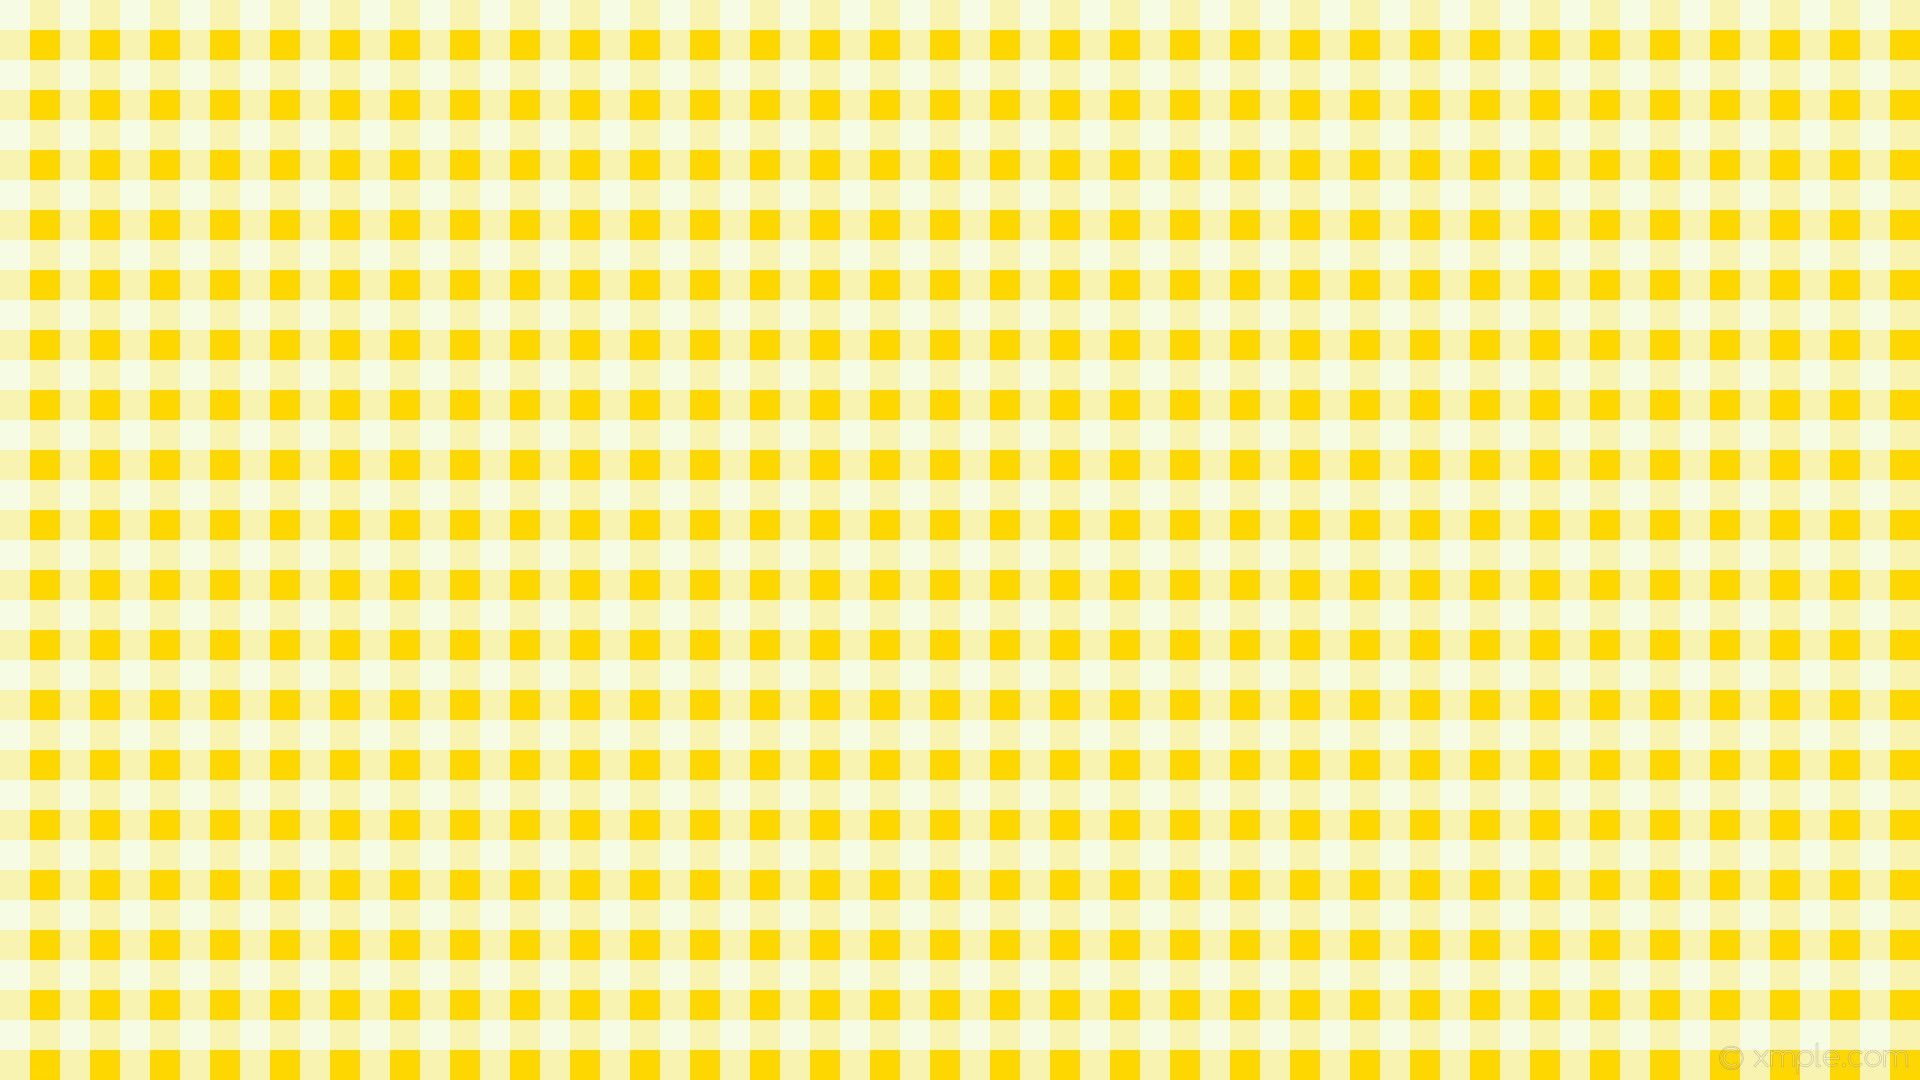 Yellow Aesthetic Computer Wallpapers - Top Free Yellow